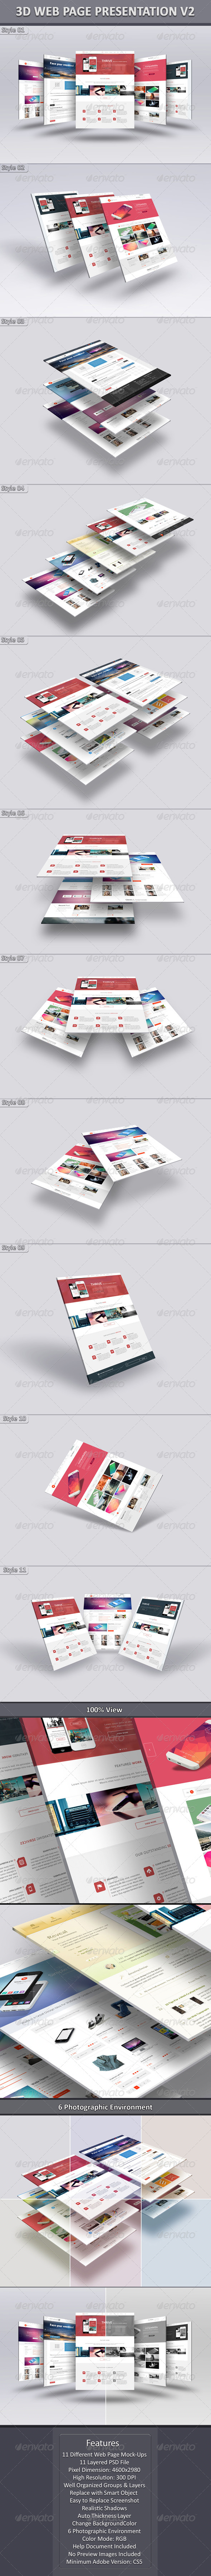 GraphicRiver 3D Web Page Presentation V2 6691601